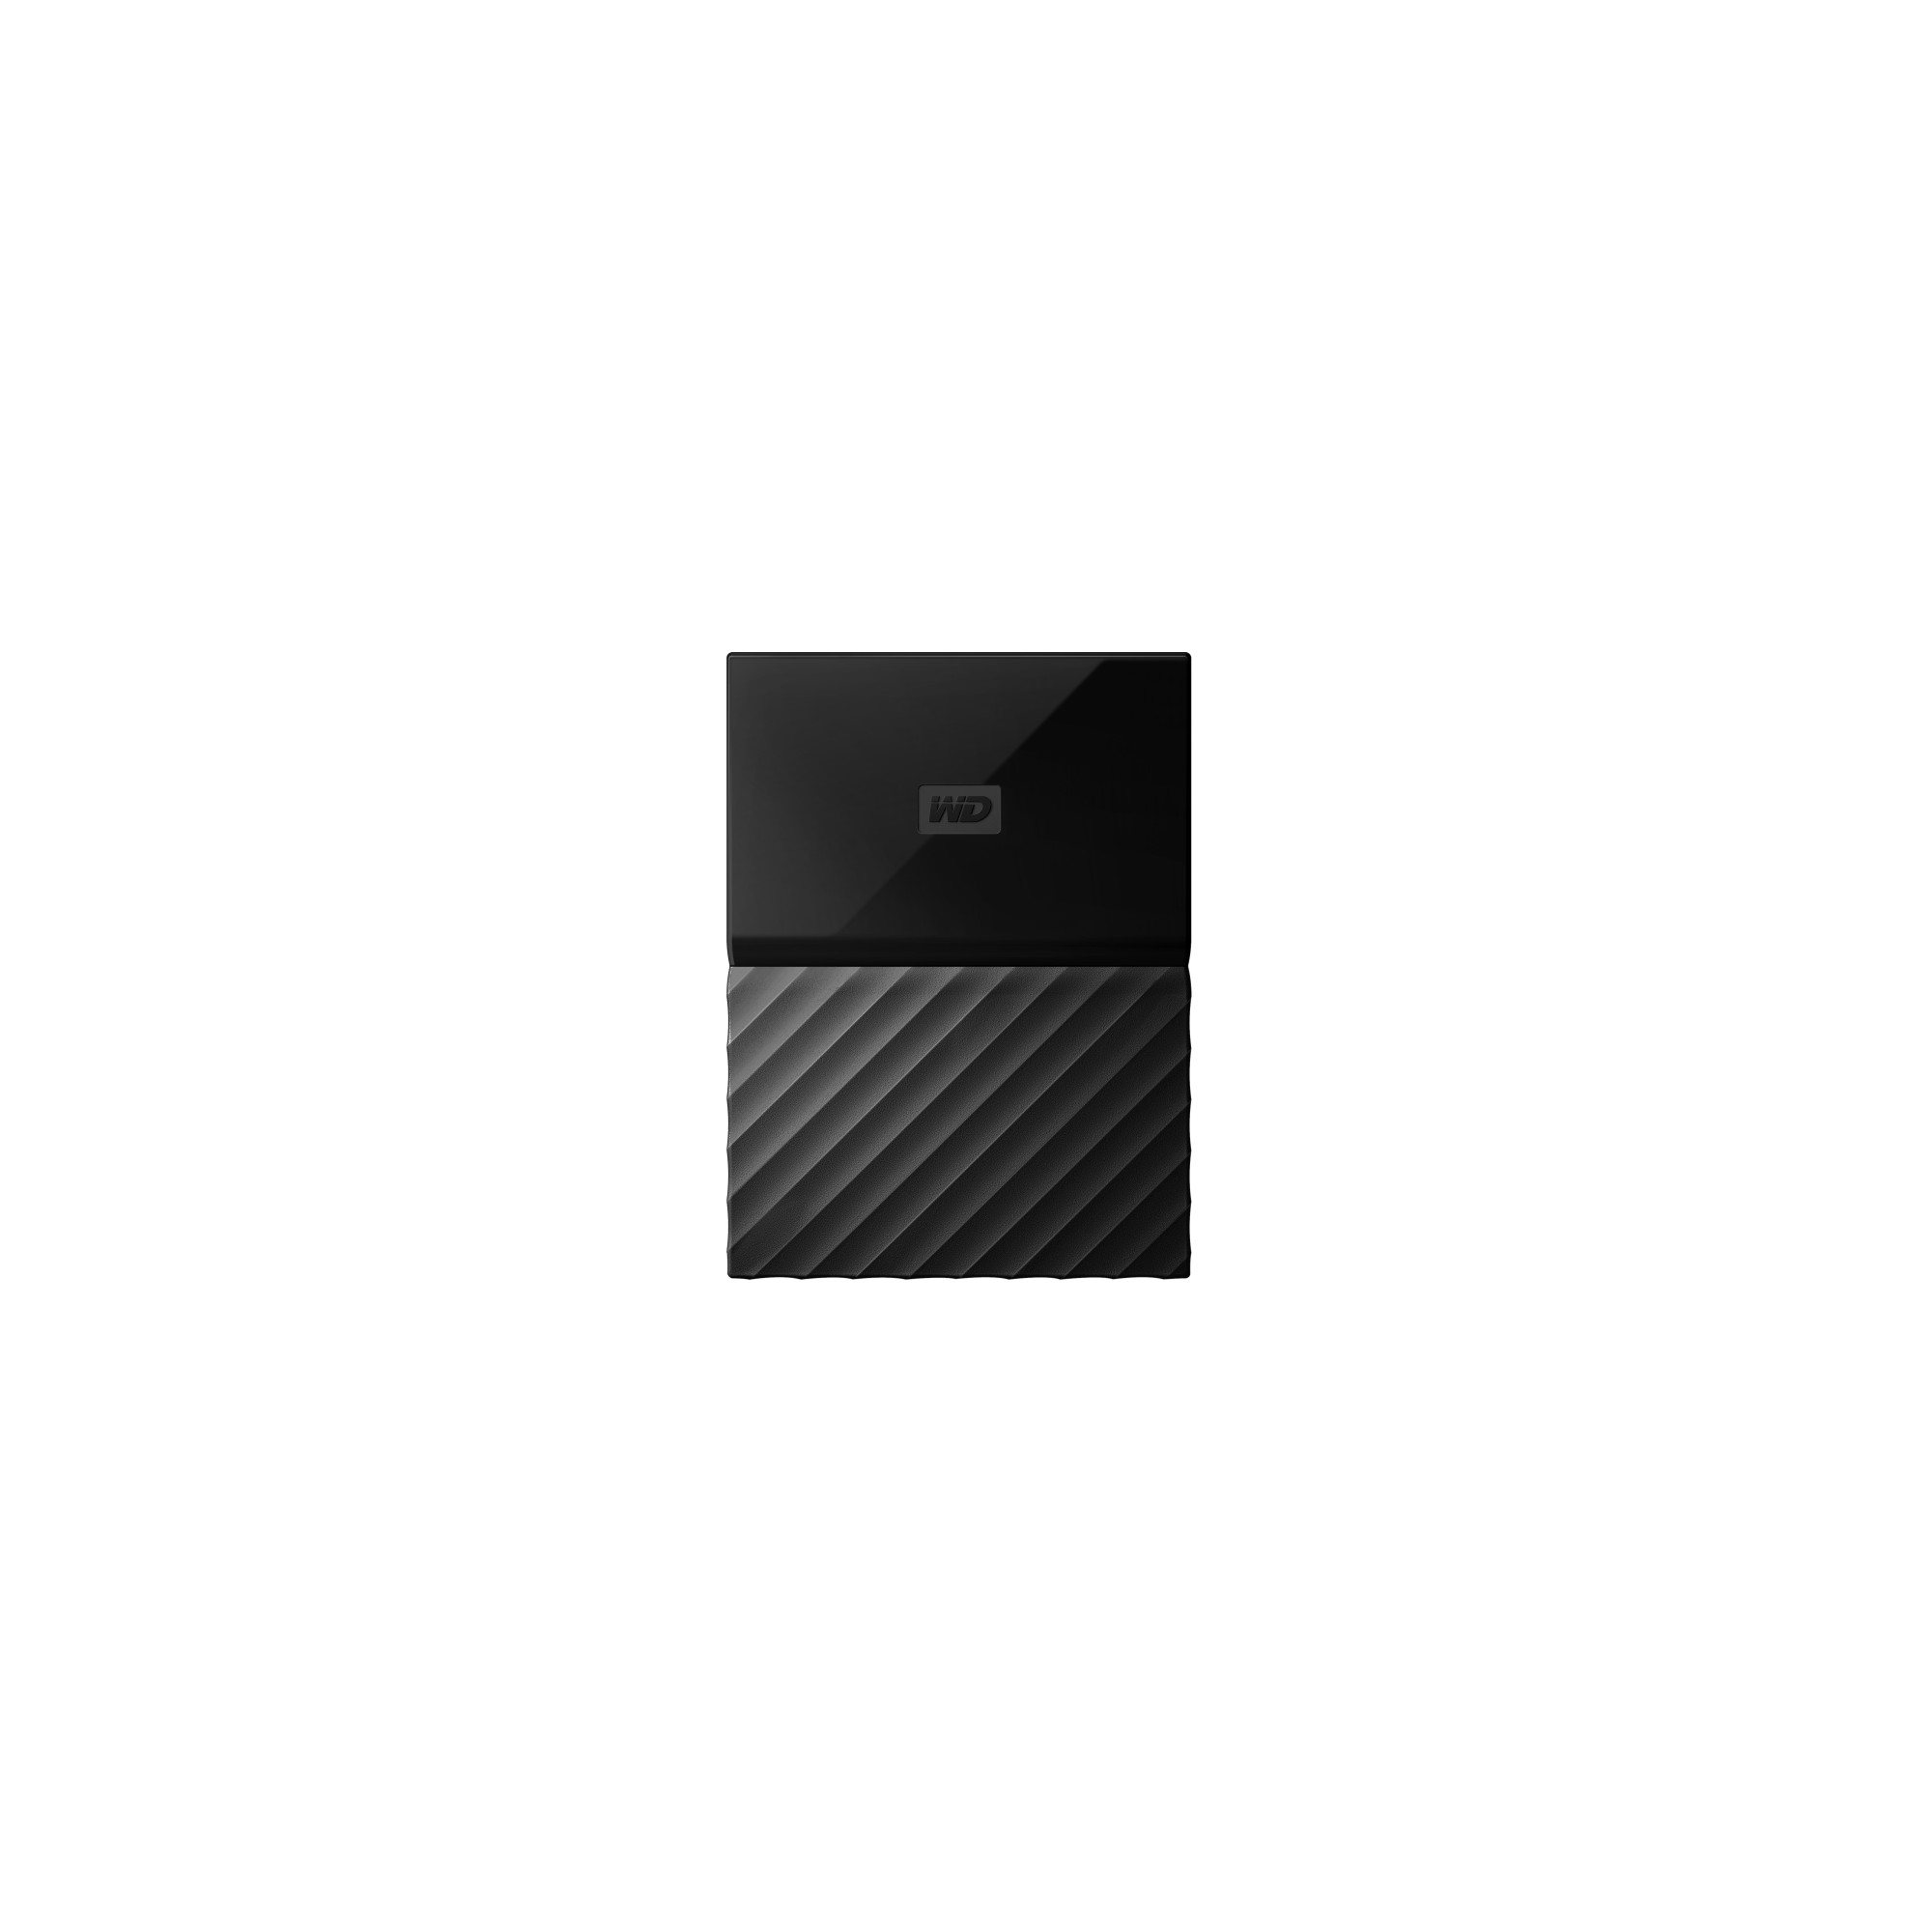 WD My Passport for Mac WDBP6A0040BBK-WESE 4 TB Hard Drive